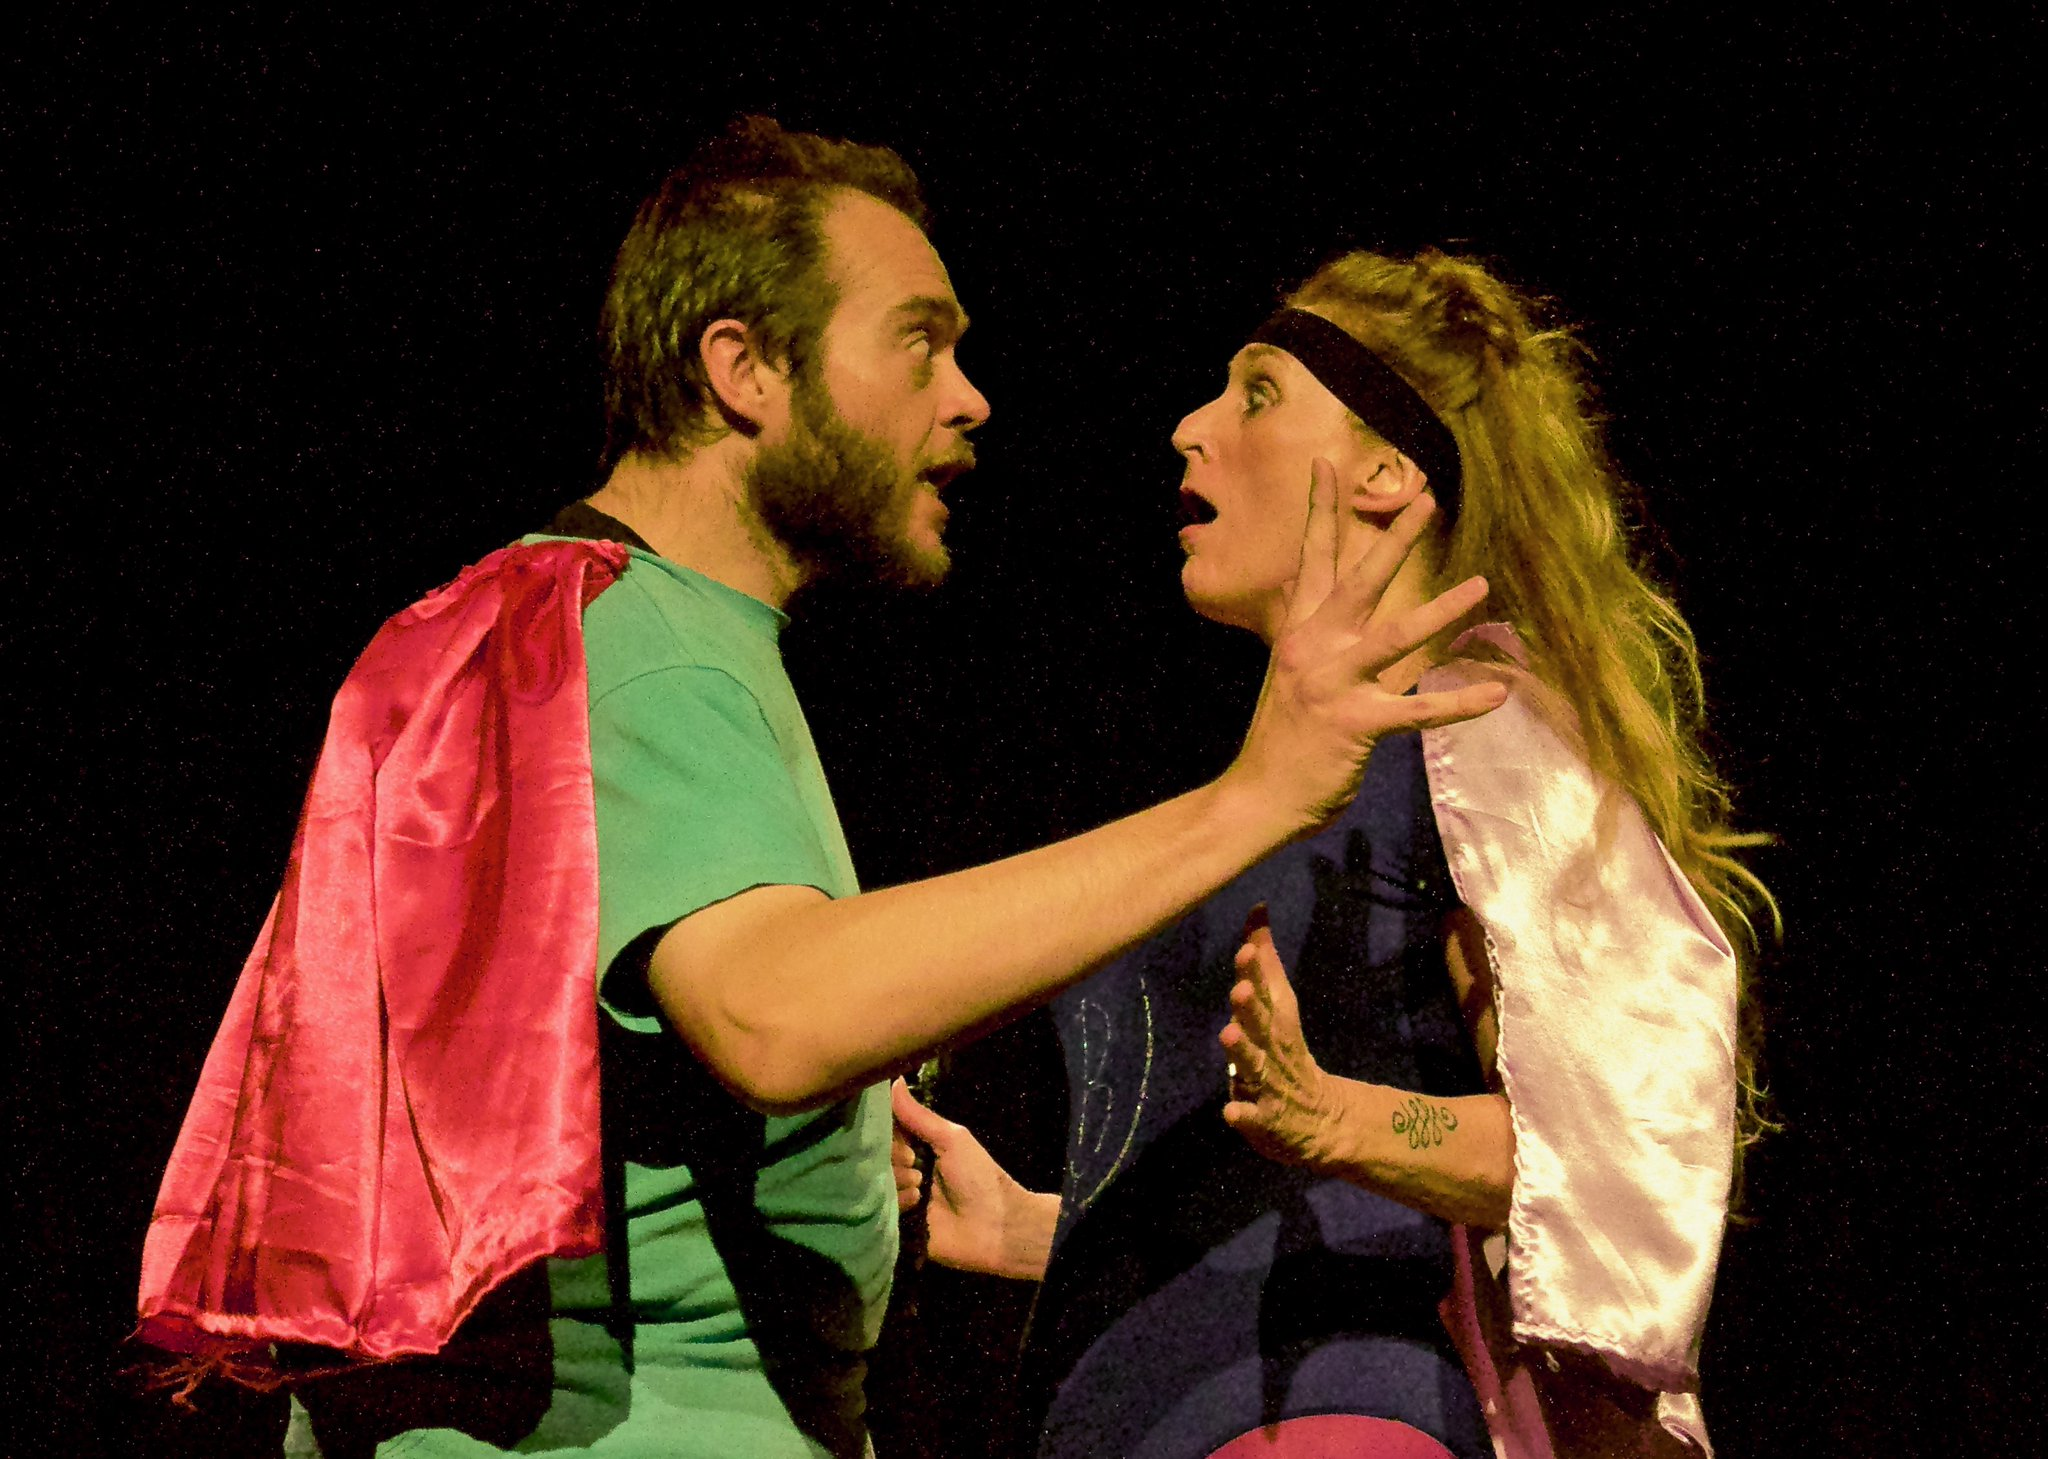 """Roger Leese and Sarah Bishop in """"True To You"""". Photo credit: Alec James Photography."""